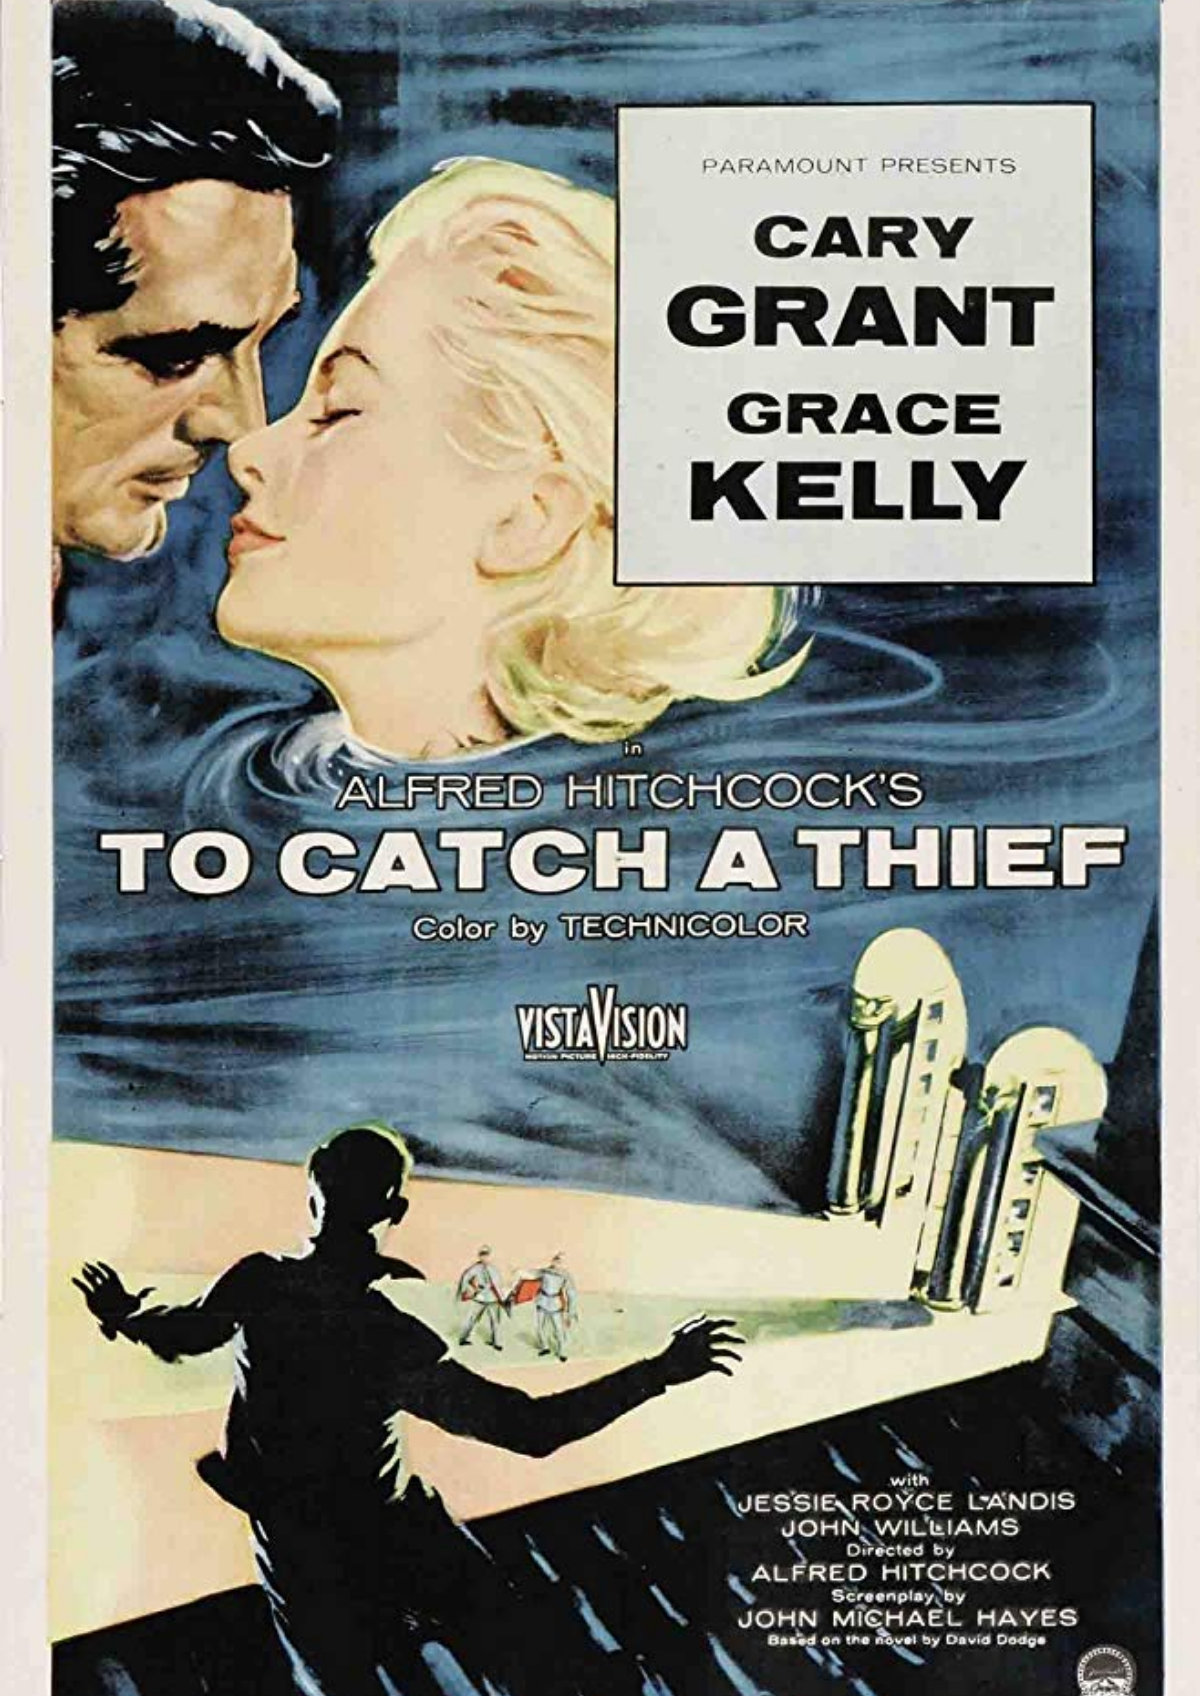 'To Catch A Thief' movie poster